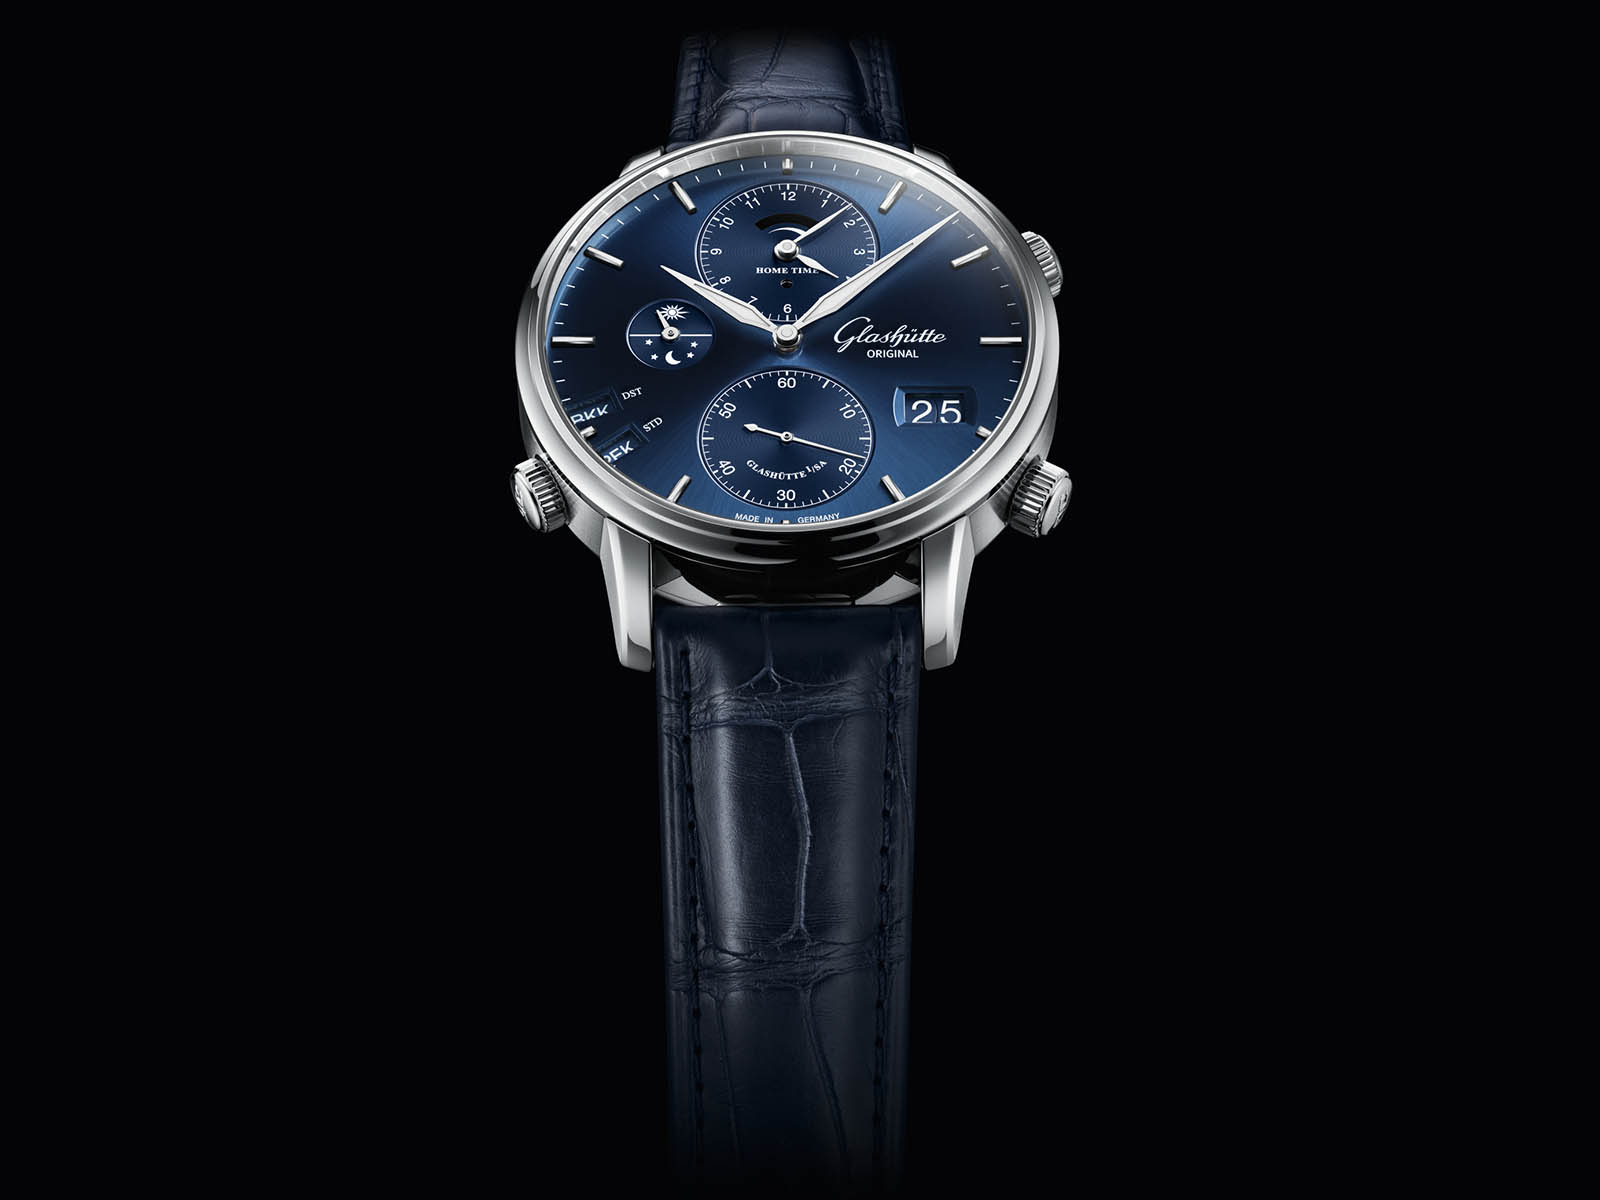 1-89-02-05-02-30-glashutte-original-senator-cosmopolite-midnight-blue-5.jpg